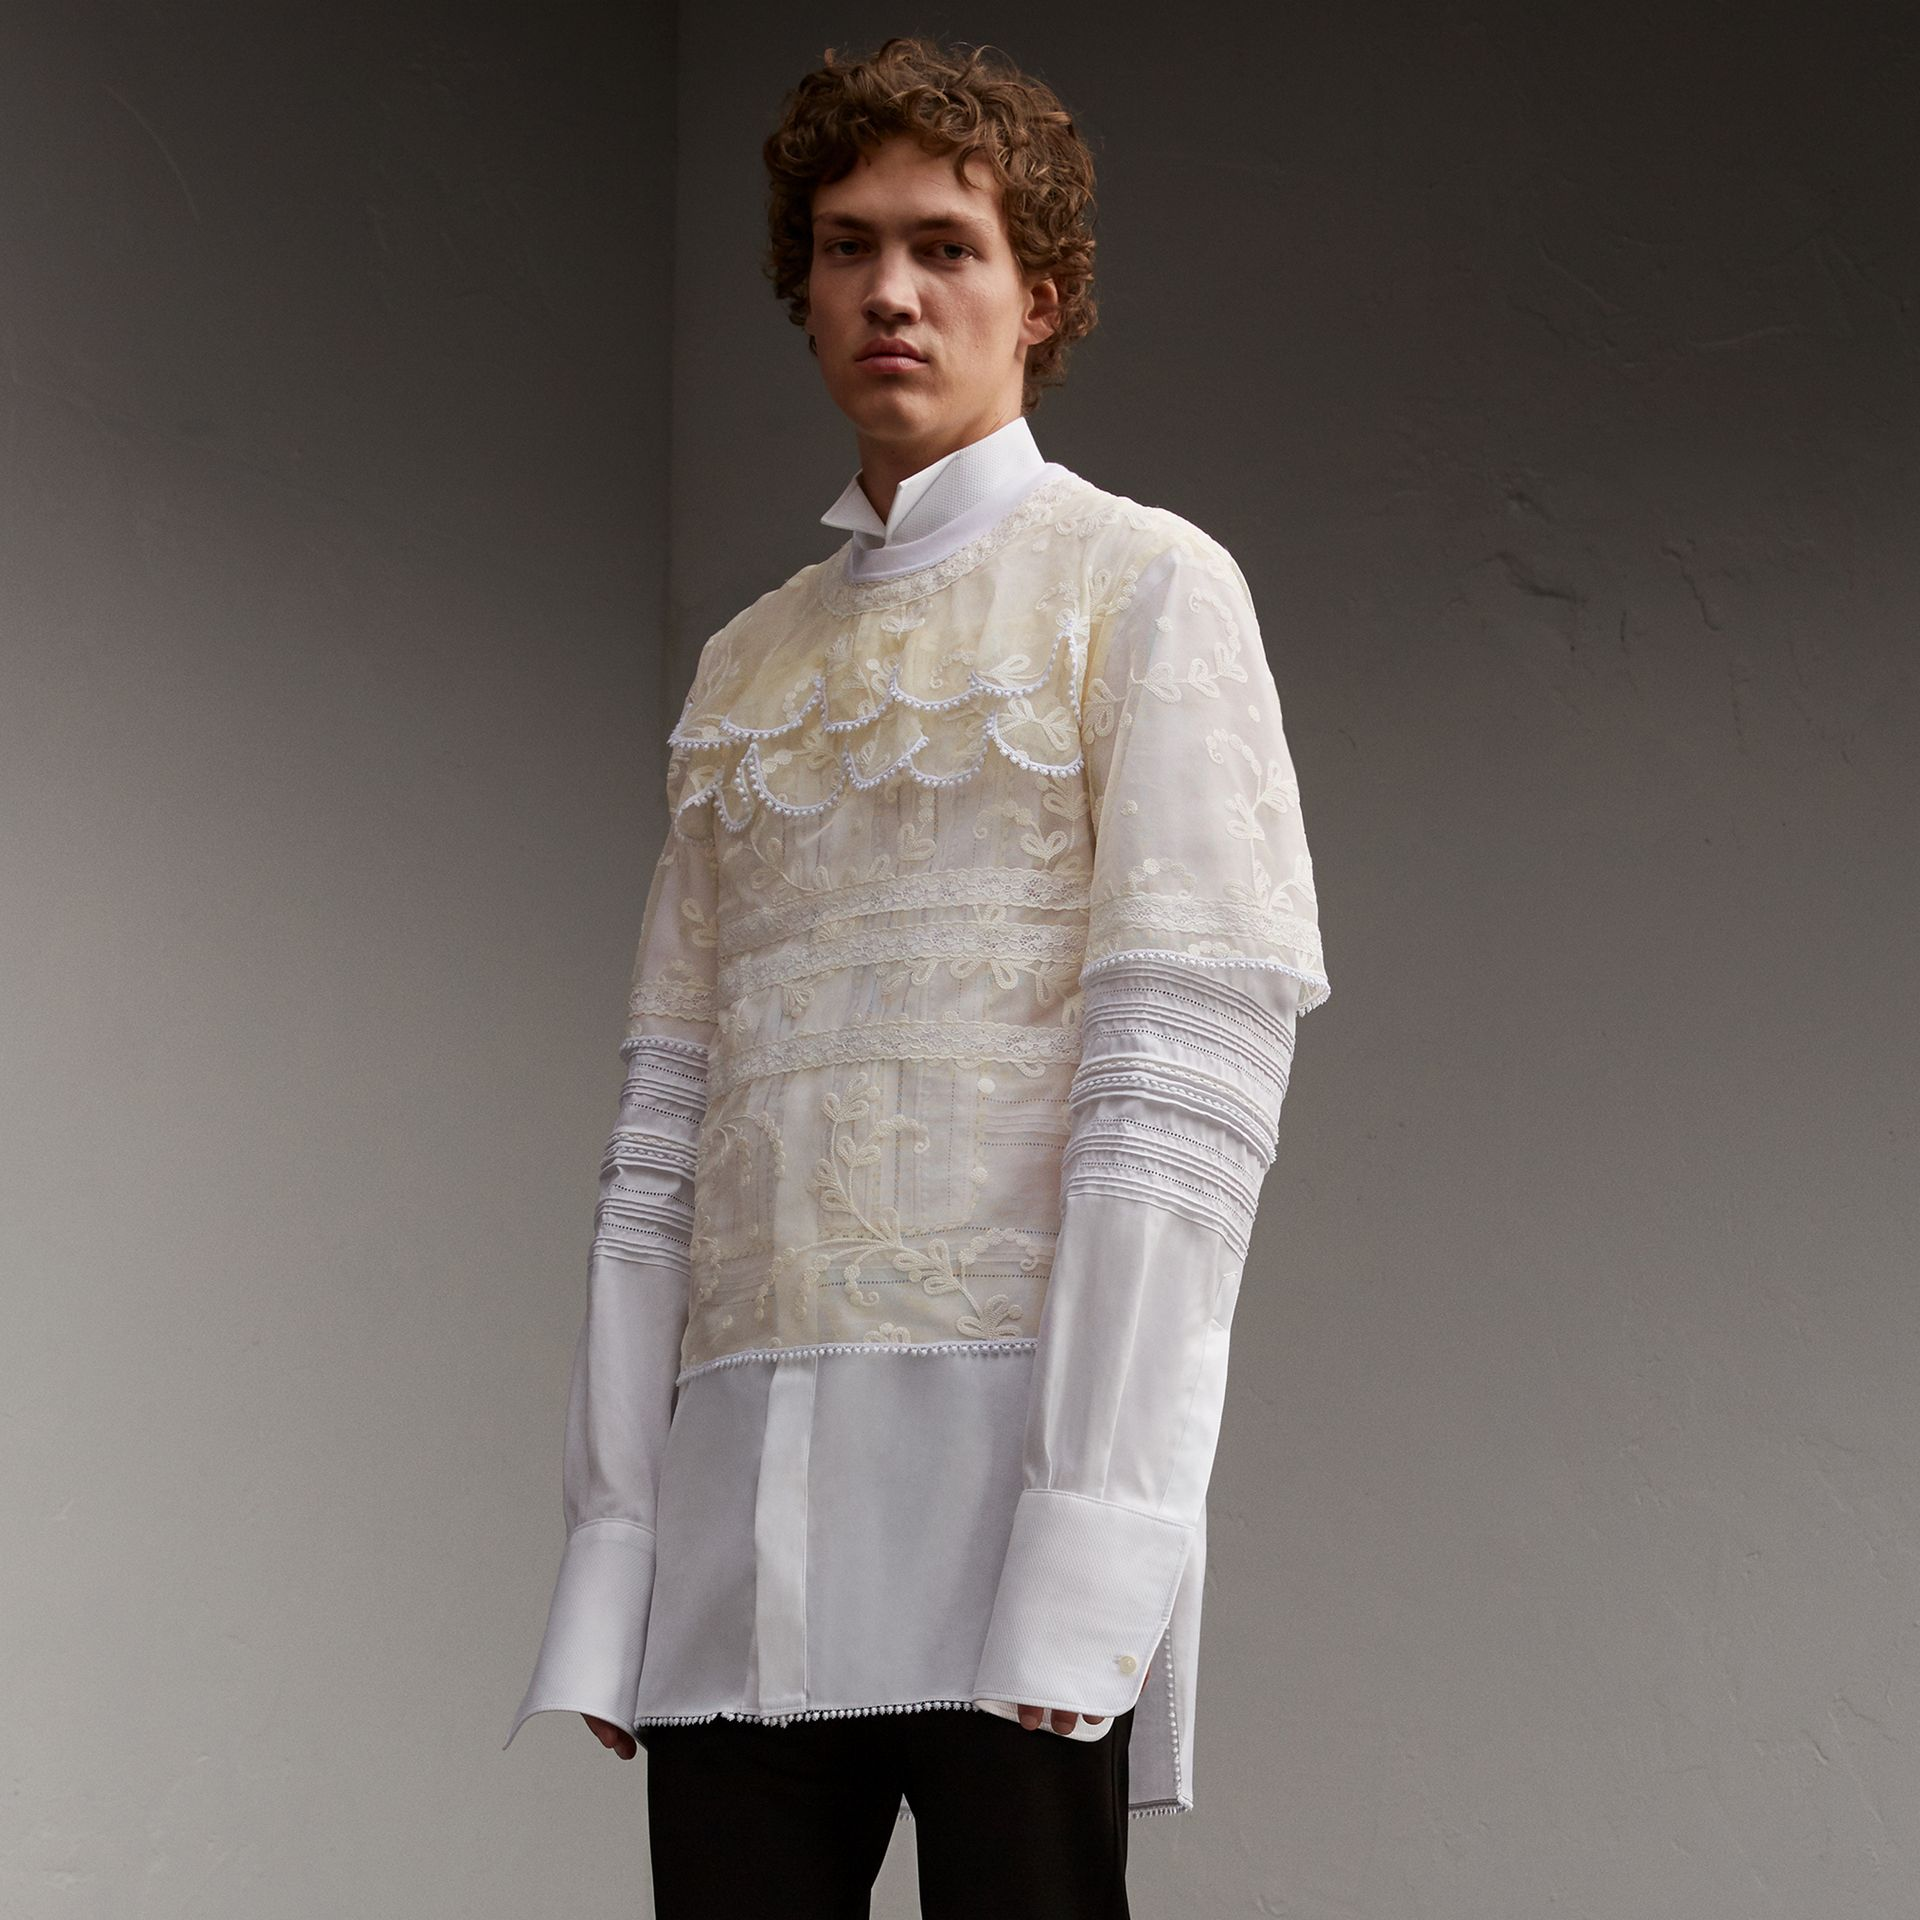 Tiered Soutache Lace T-shirt in White - Men | Burberry - gallery image 1